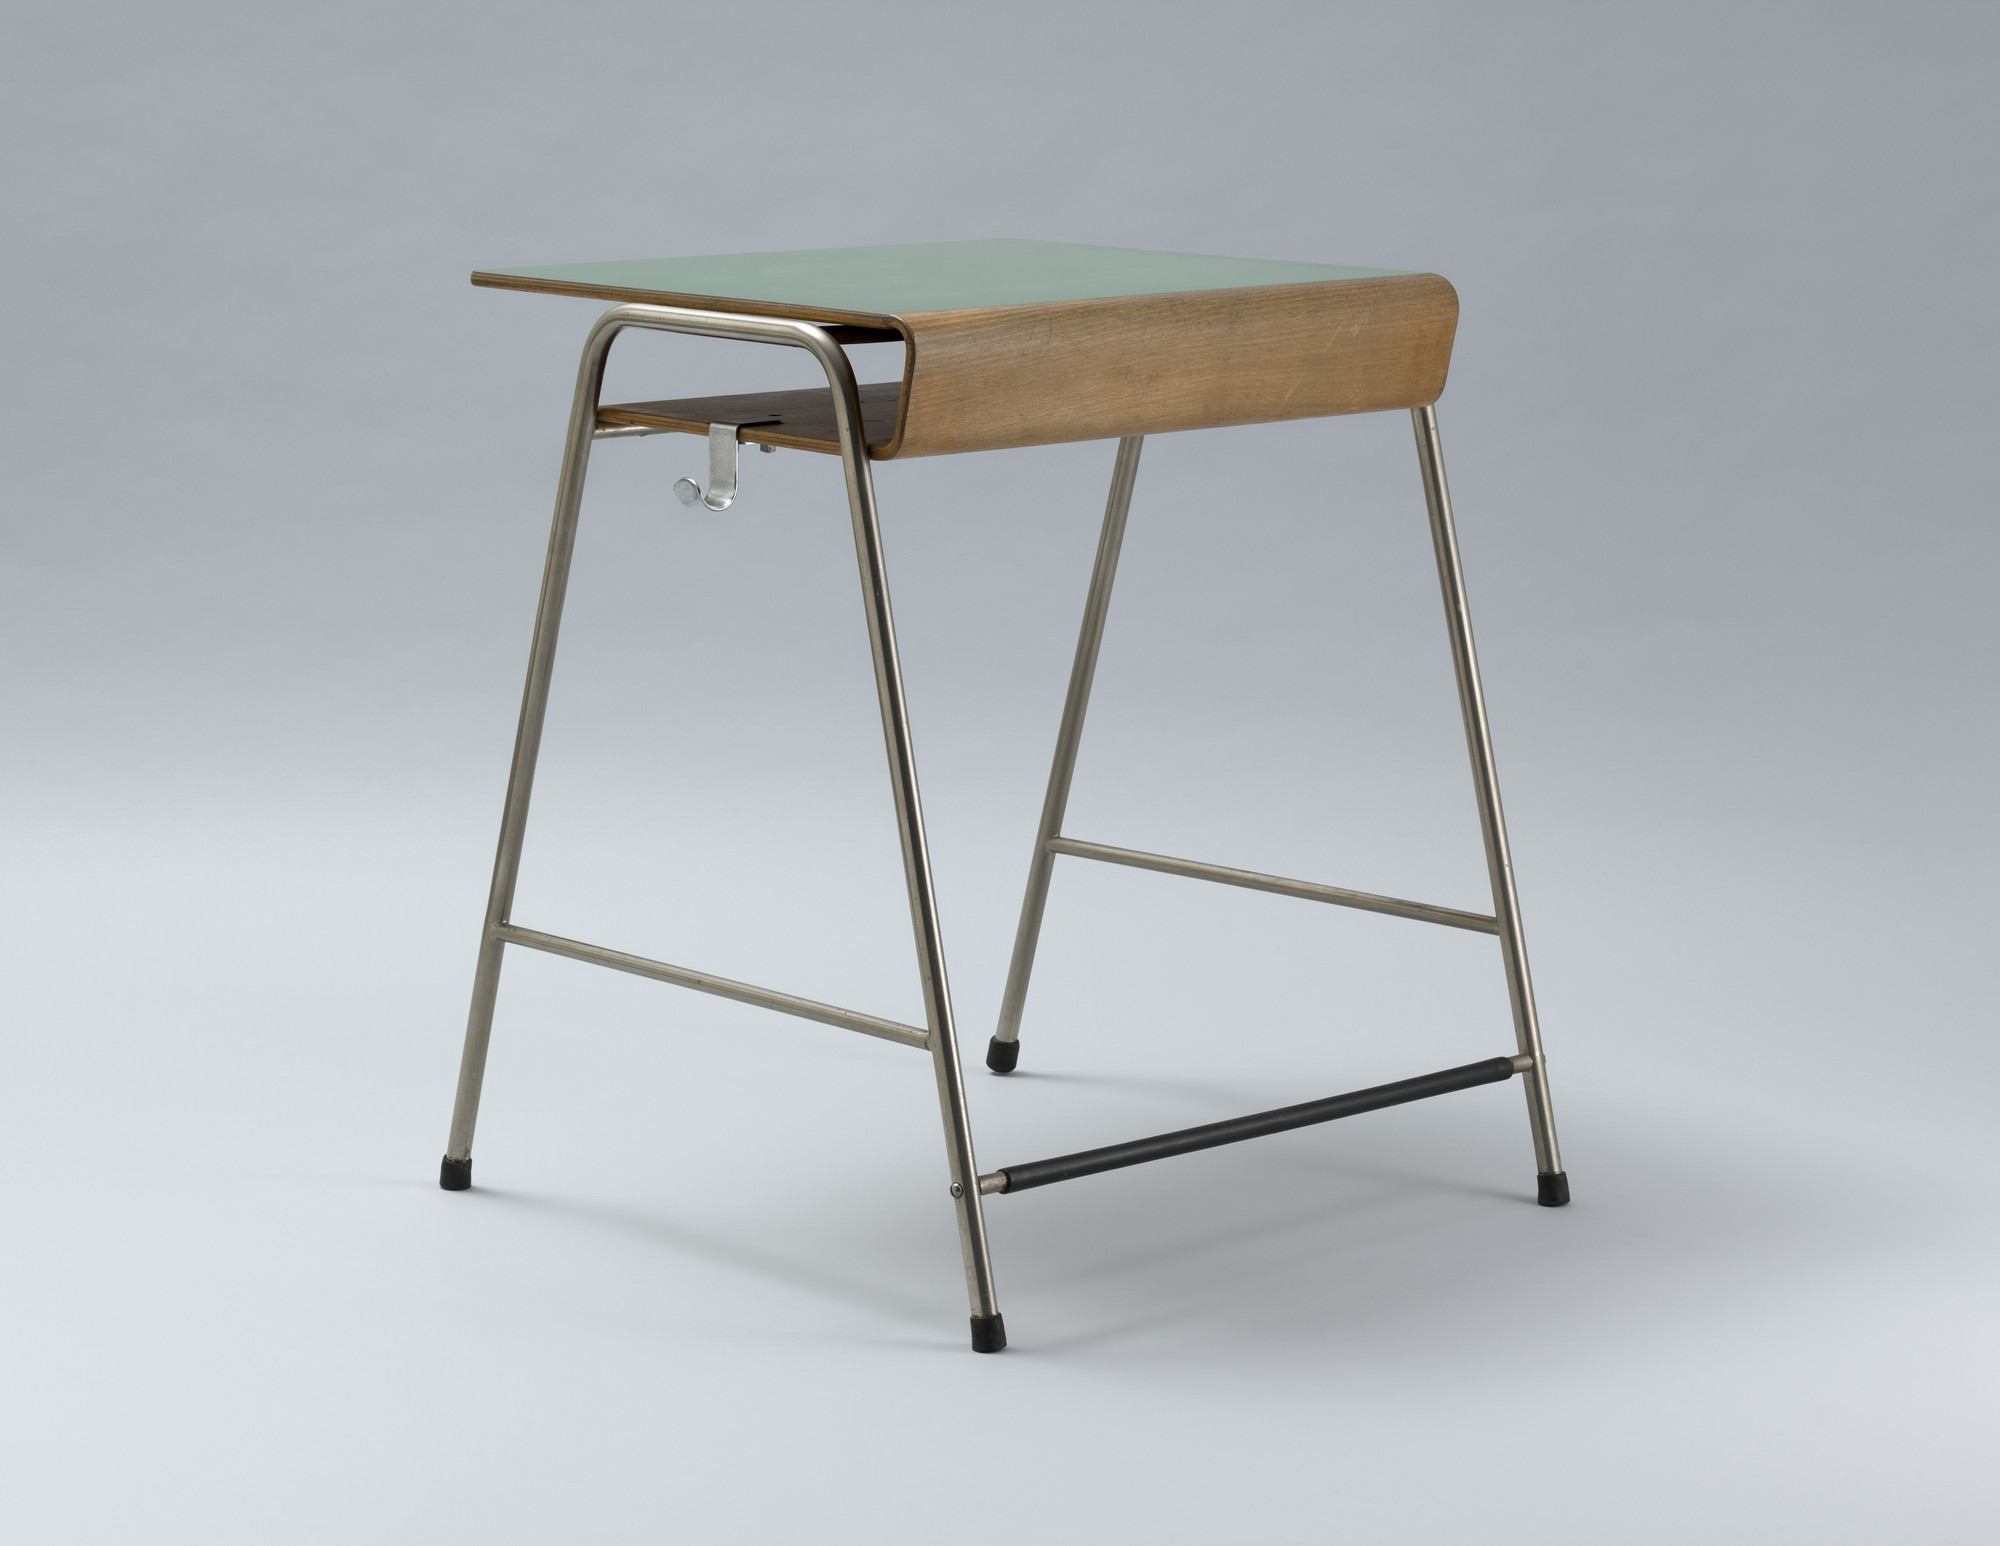 Arne Jacobsen. Munkegård school desk. c. 1955